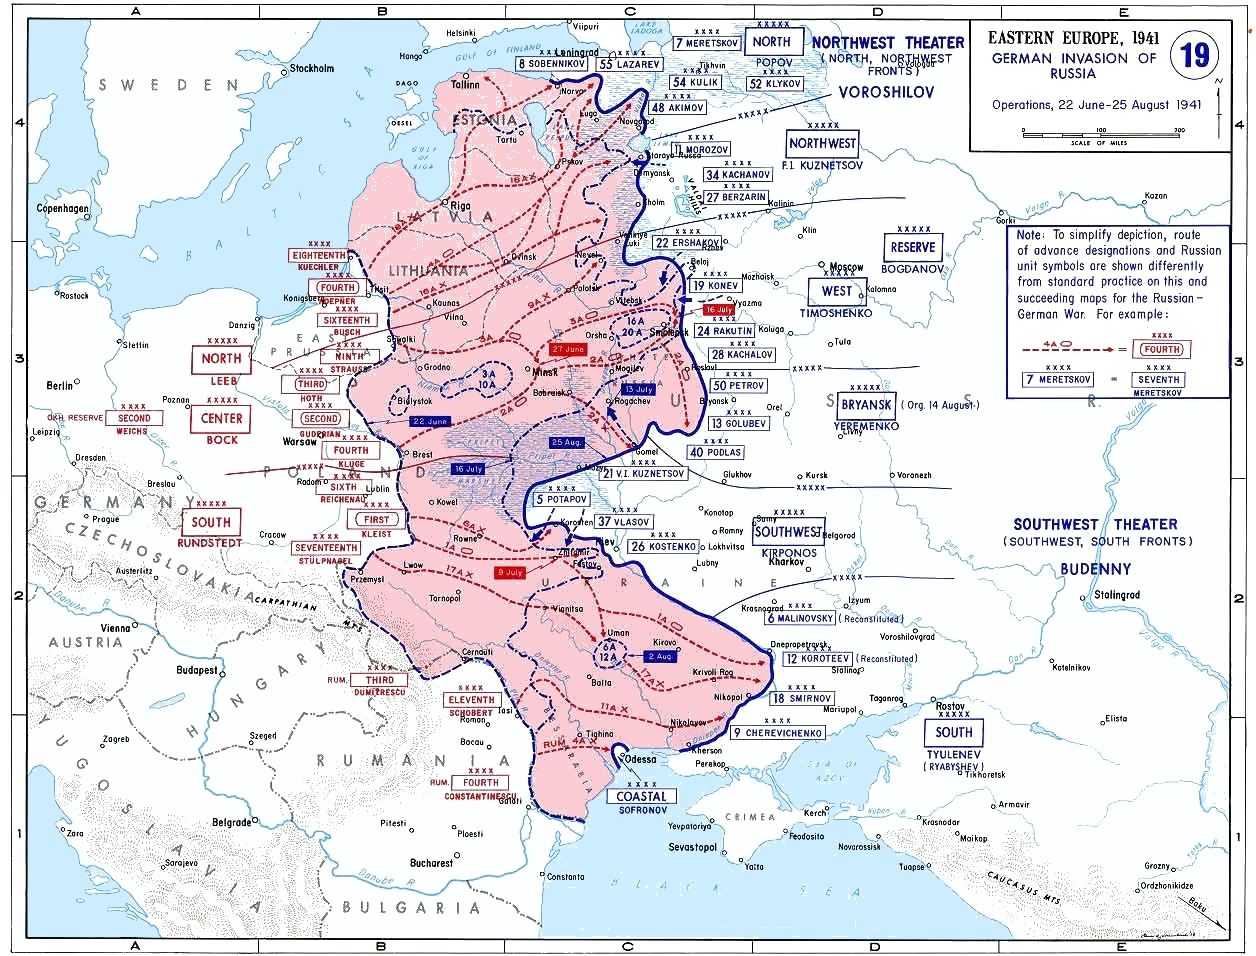 http://upload.wikimedia.org/wikipedia/commons/1/15/Invasion1941.jpg